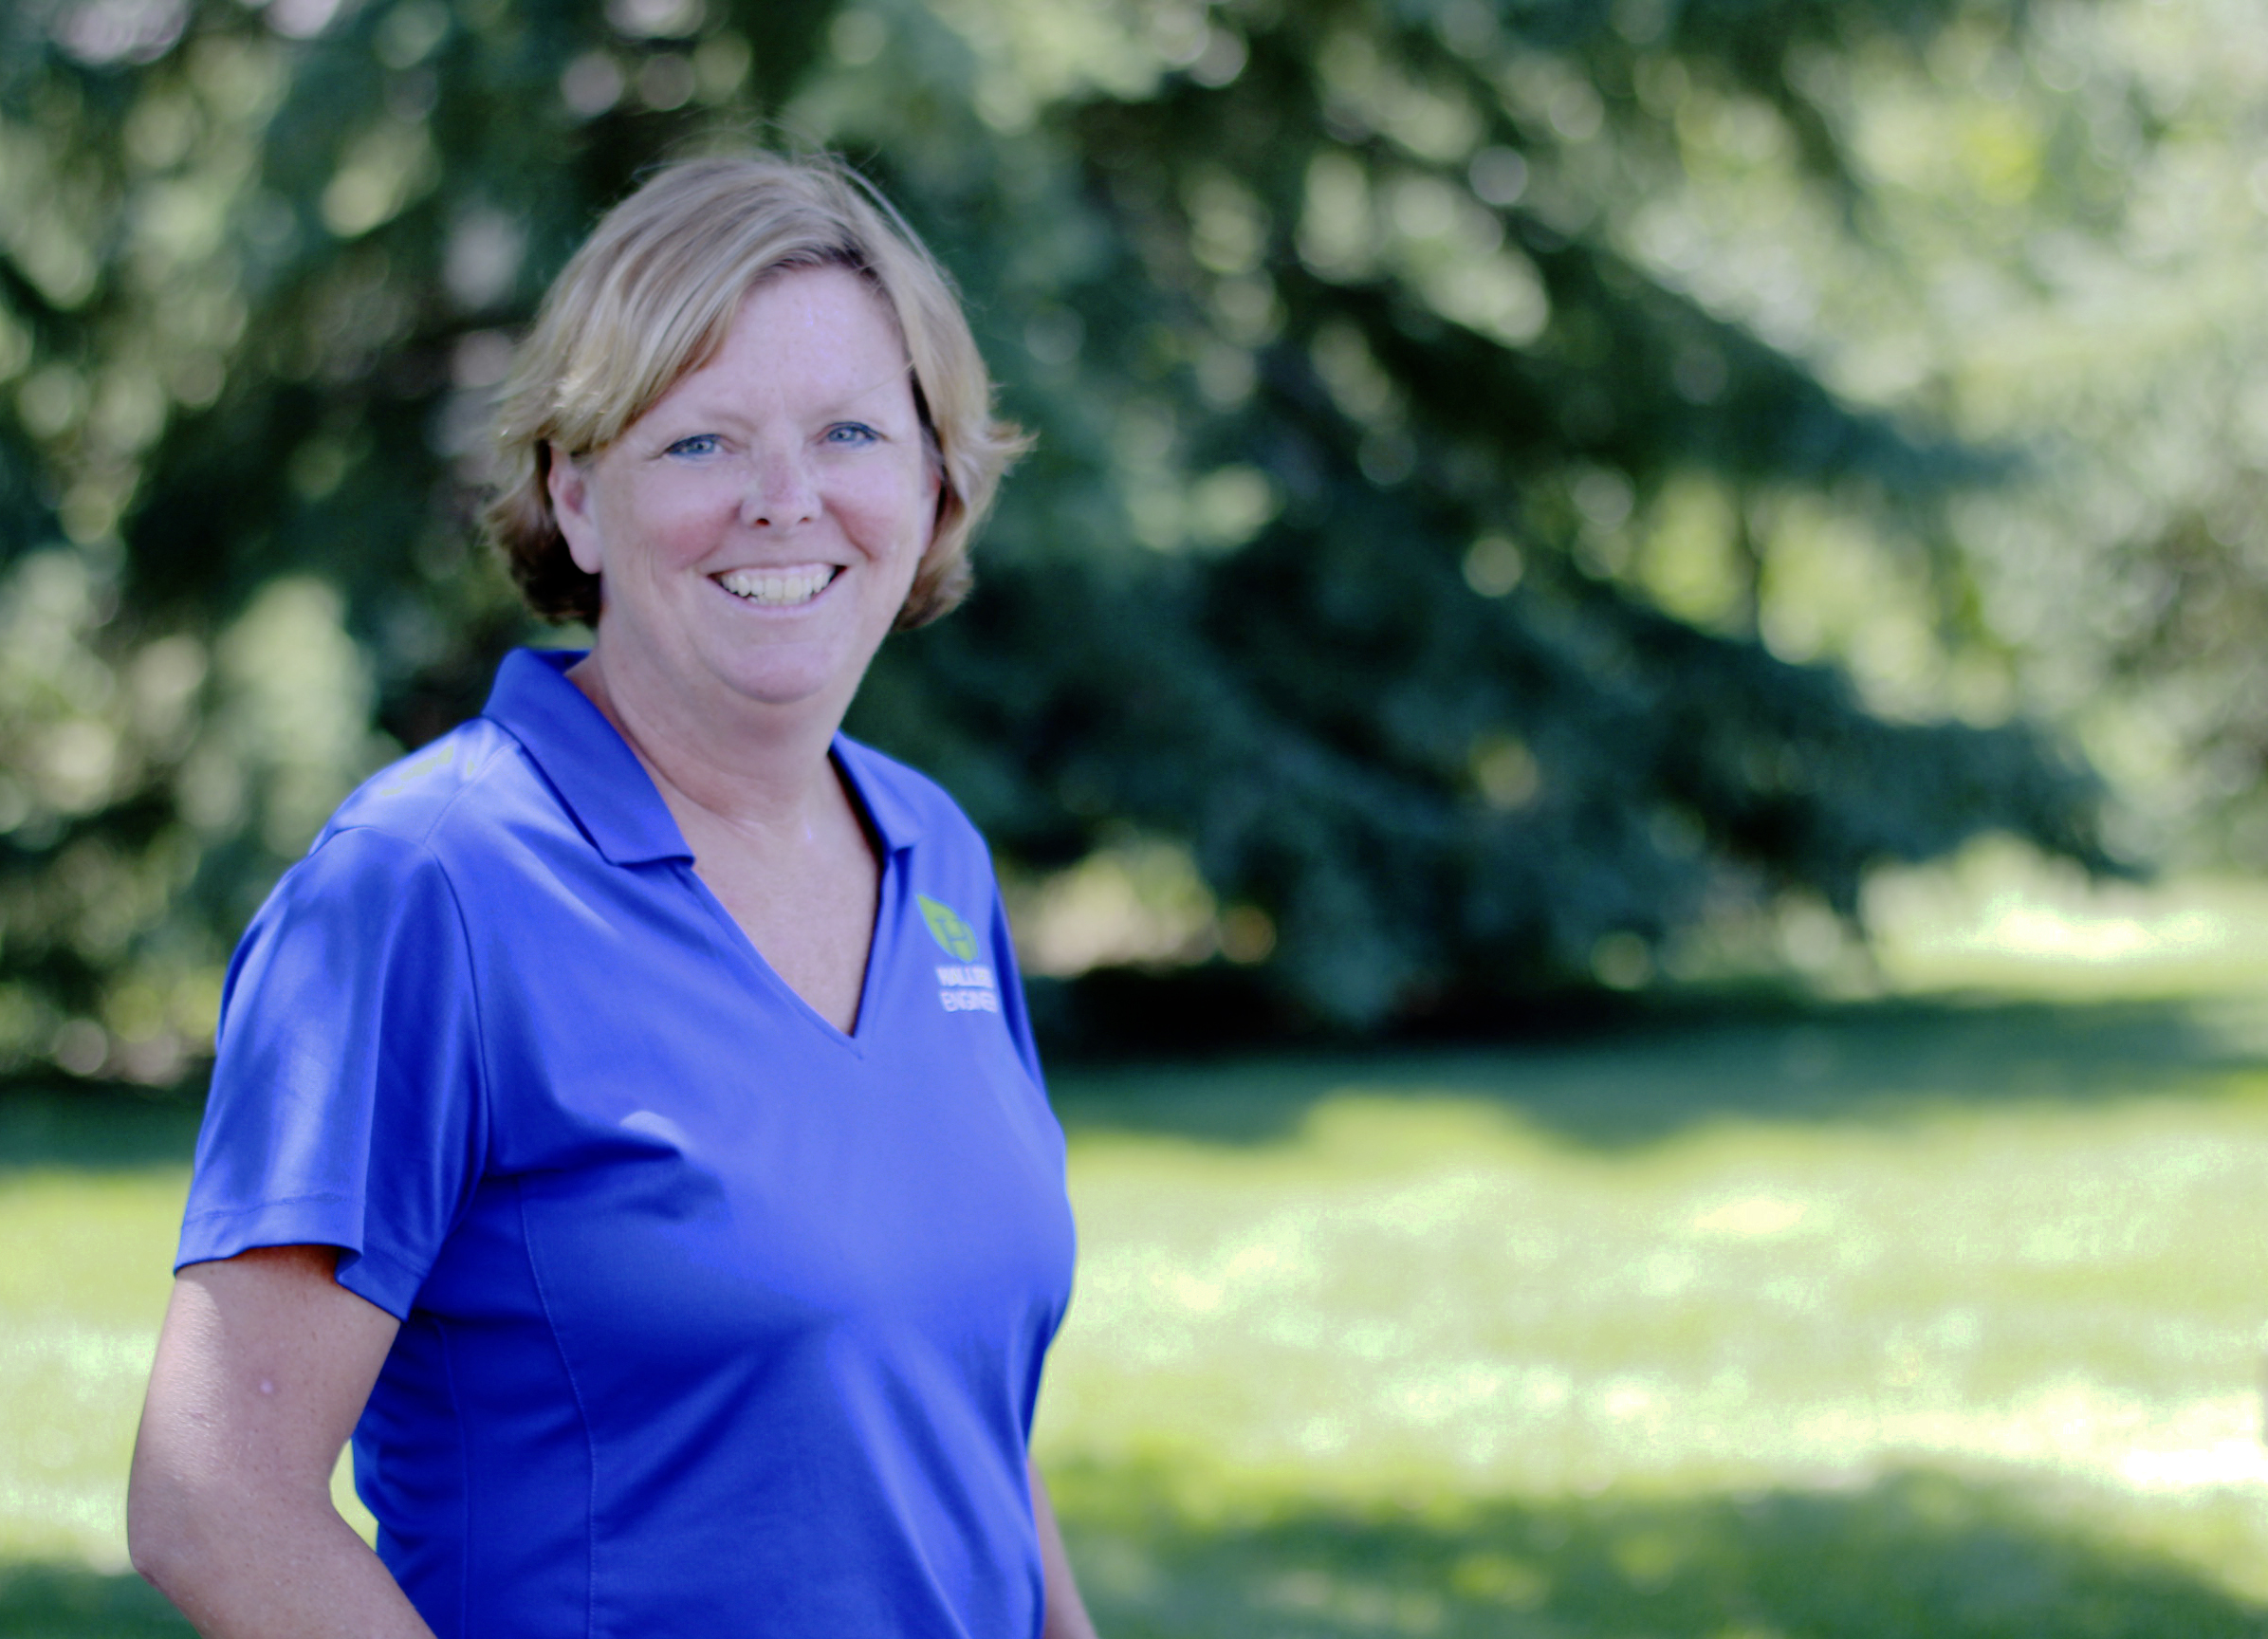 Tammy Gillen - OFFICE ADMINISTRATORTammy joined HEI in 1995. Tammy provides staff office support for all departments at HEI.When not at HEI: I enjoy spending time with my kids and attending their sporting events.